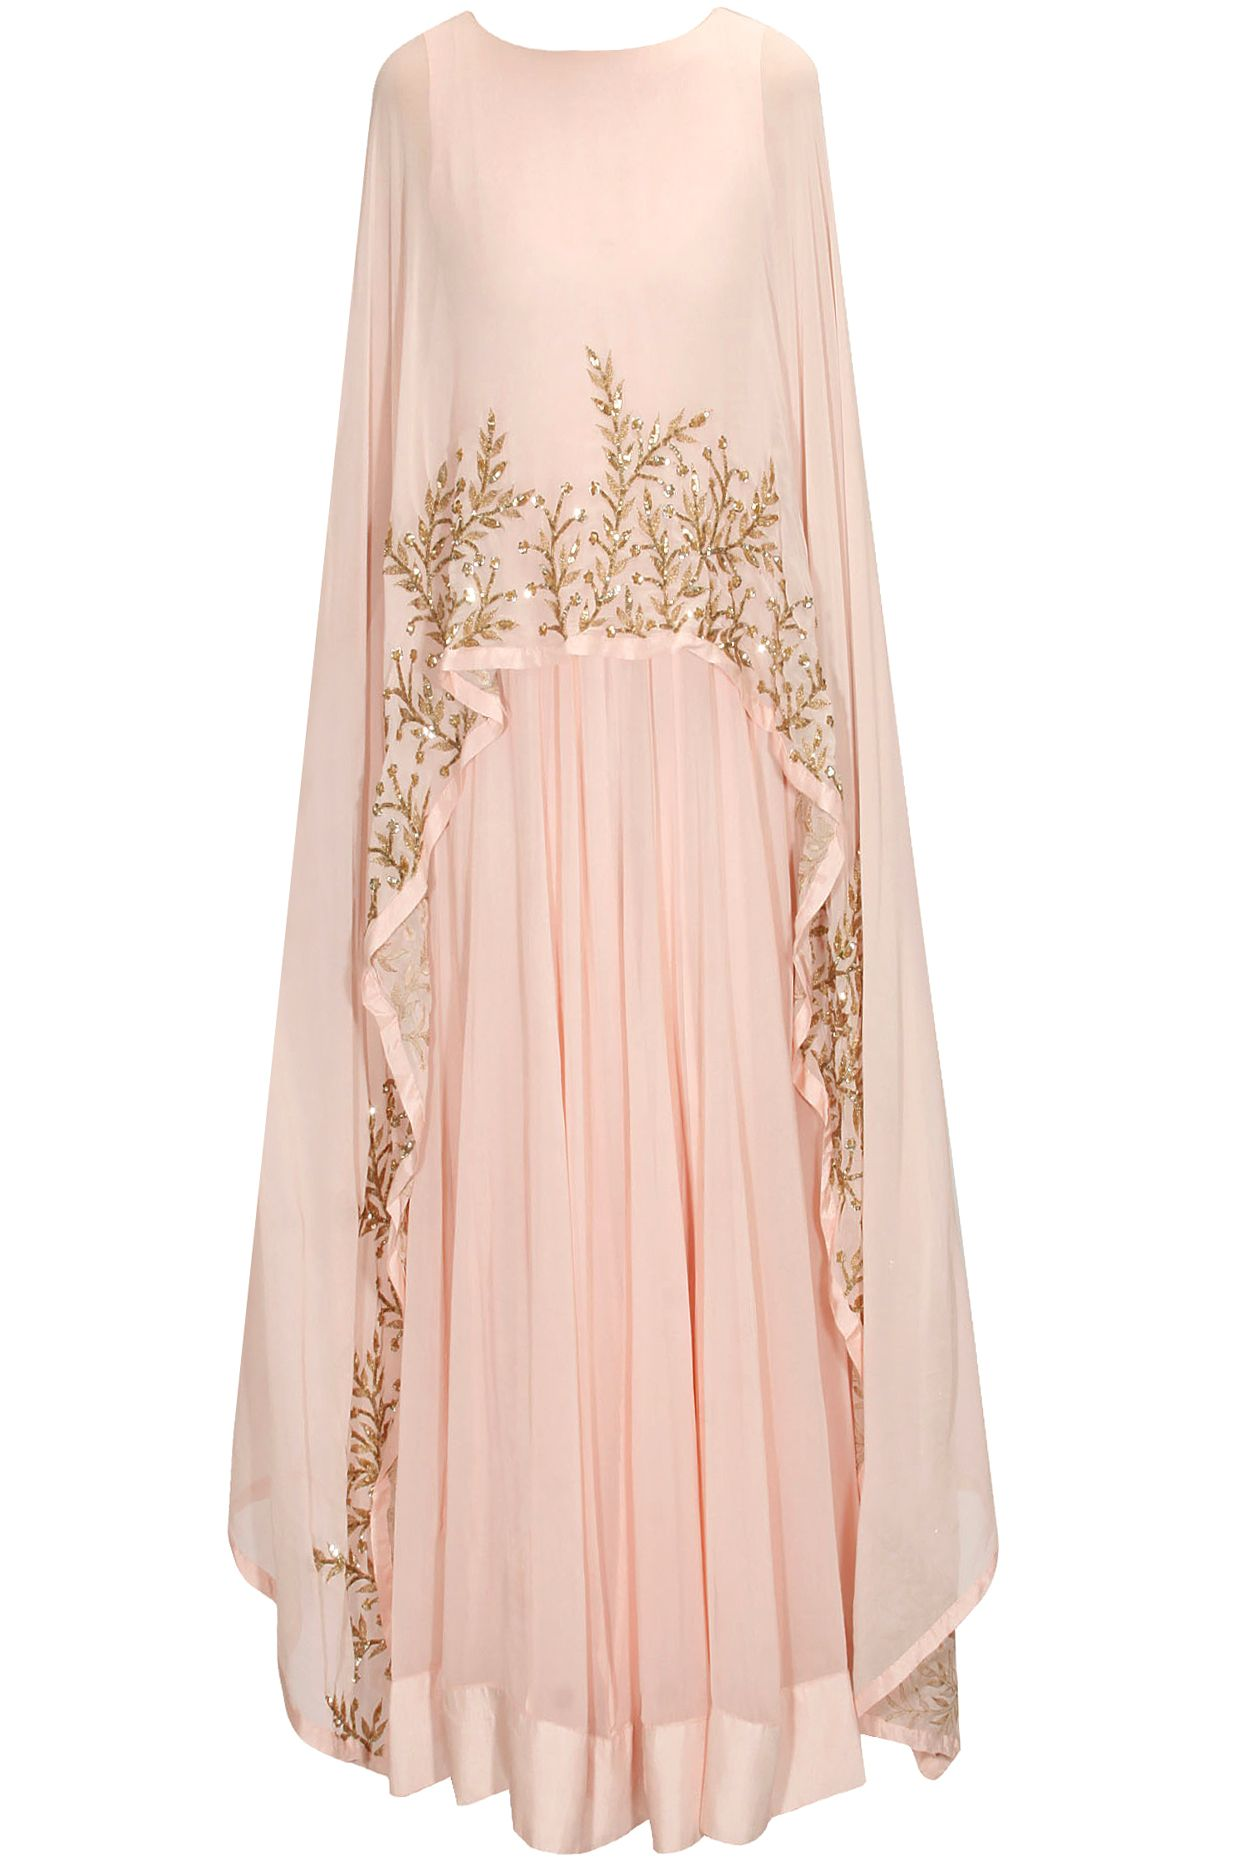 Prathyusha garimella blush pink embellished cape gown for Cape designs